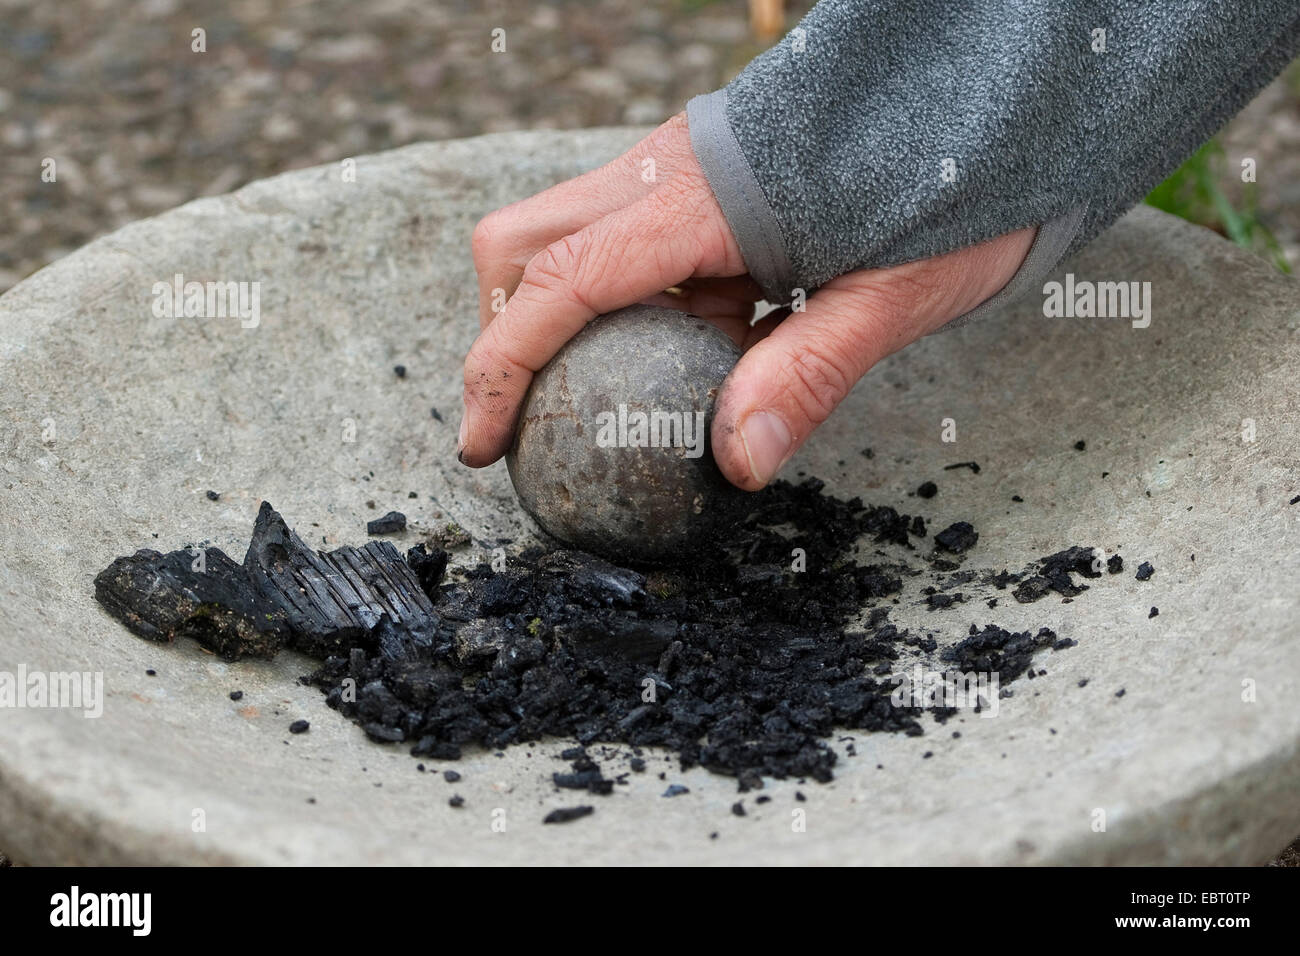 grinding charcoal to paint with earth colour, Germany - Stock Image